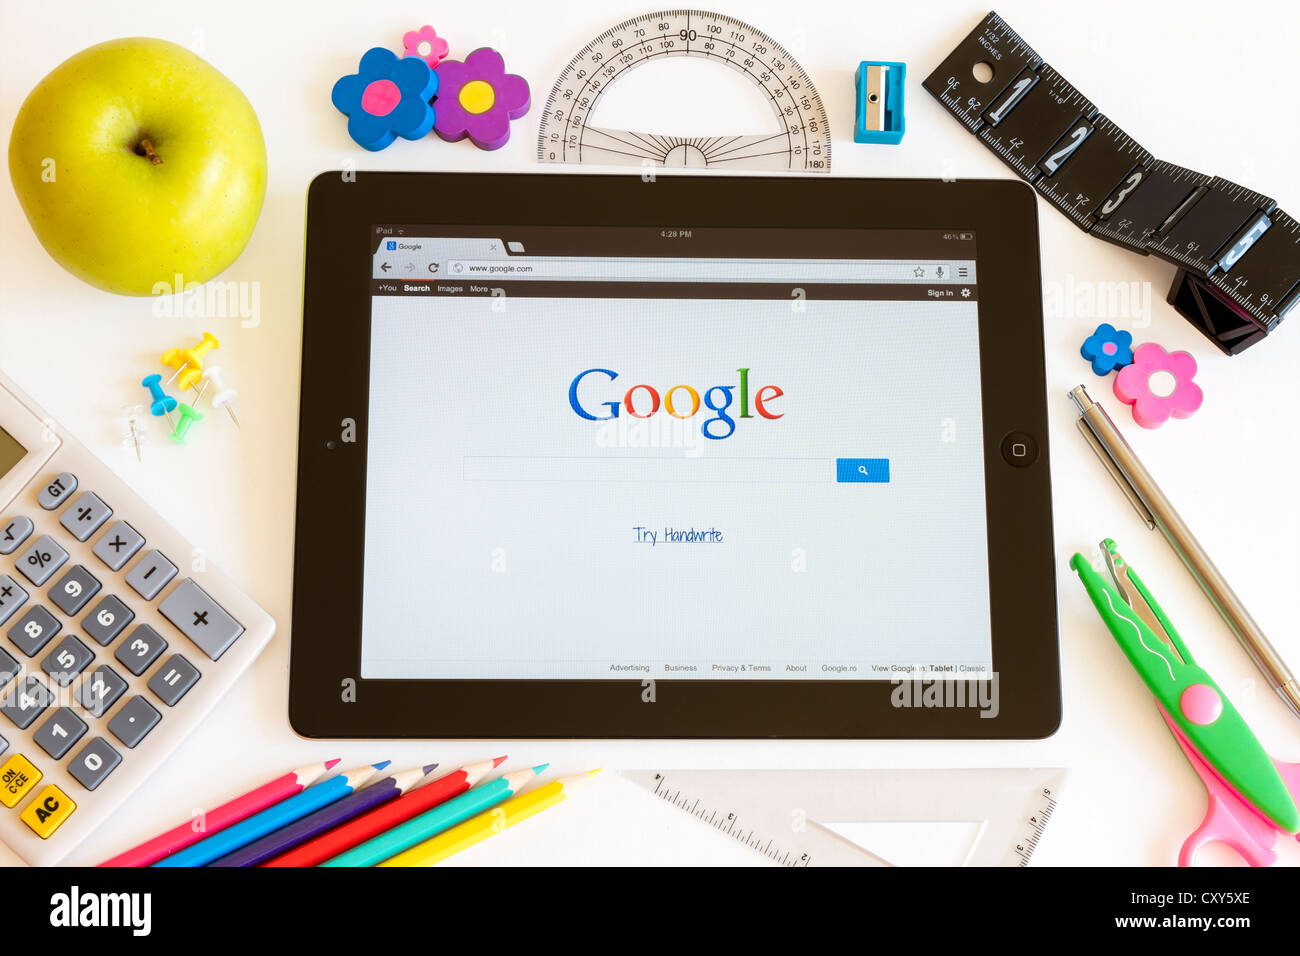 Google on Ipad 3 with school accesories on white background - Stock Image